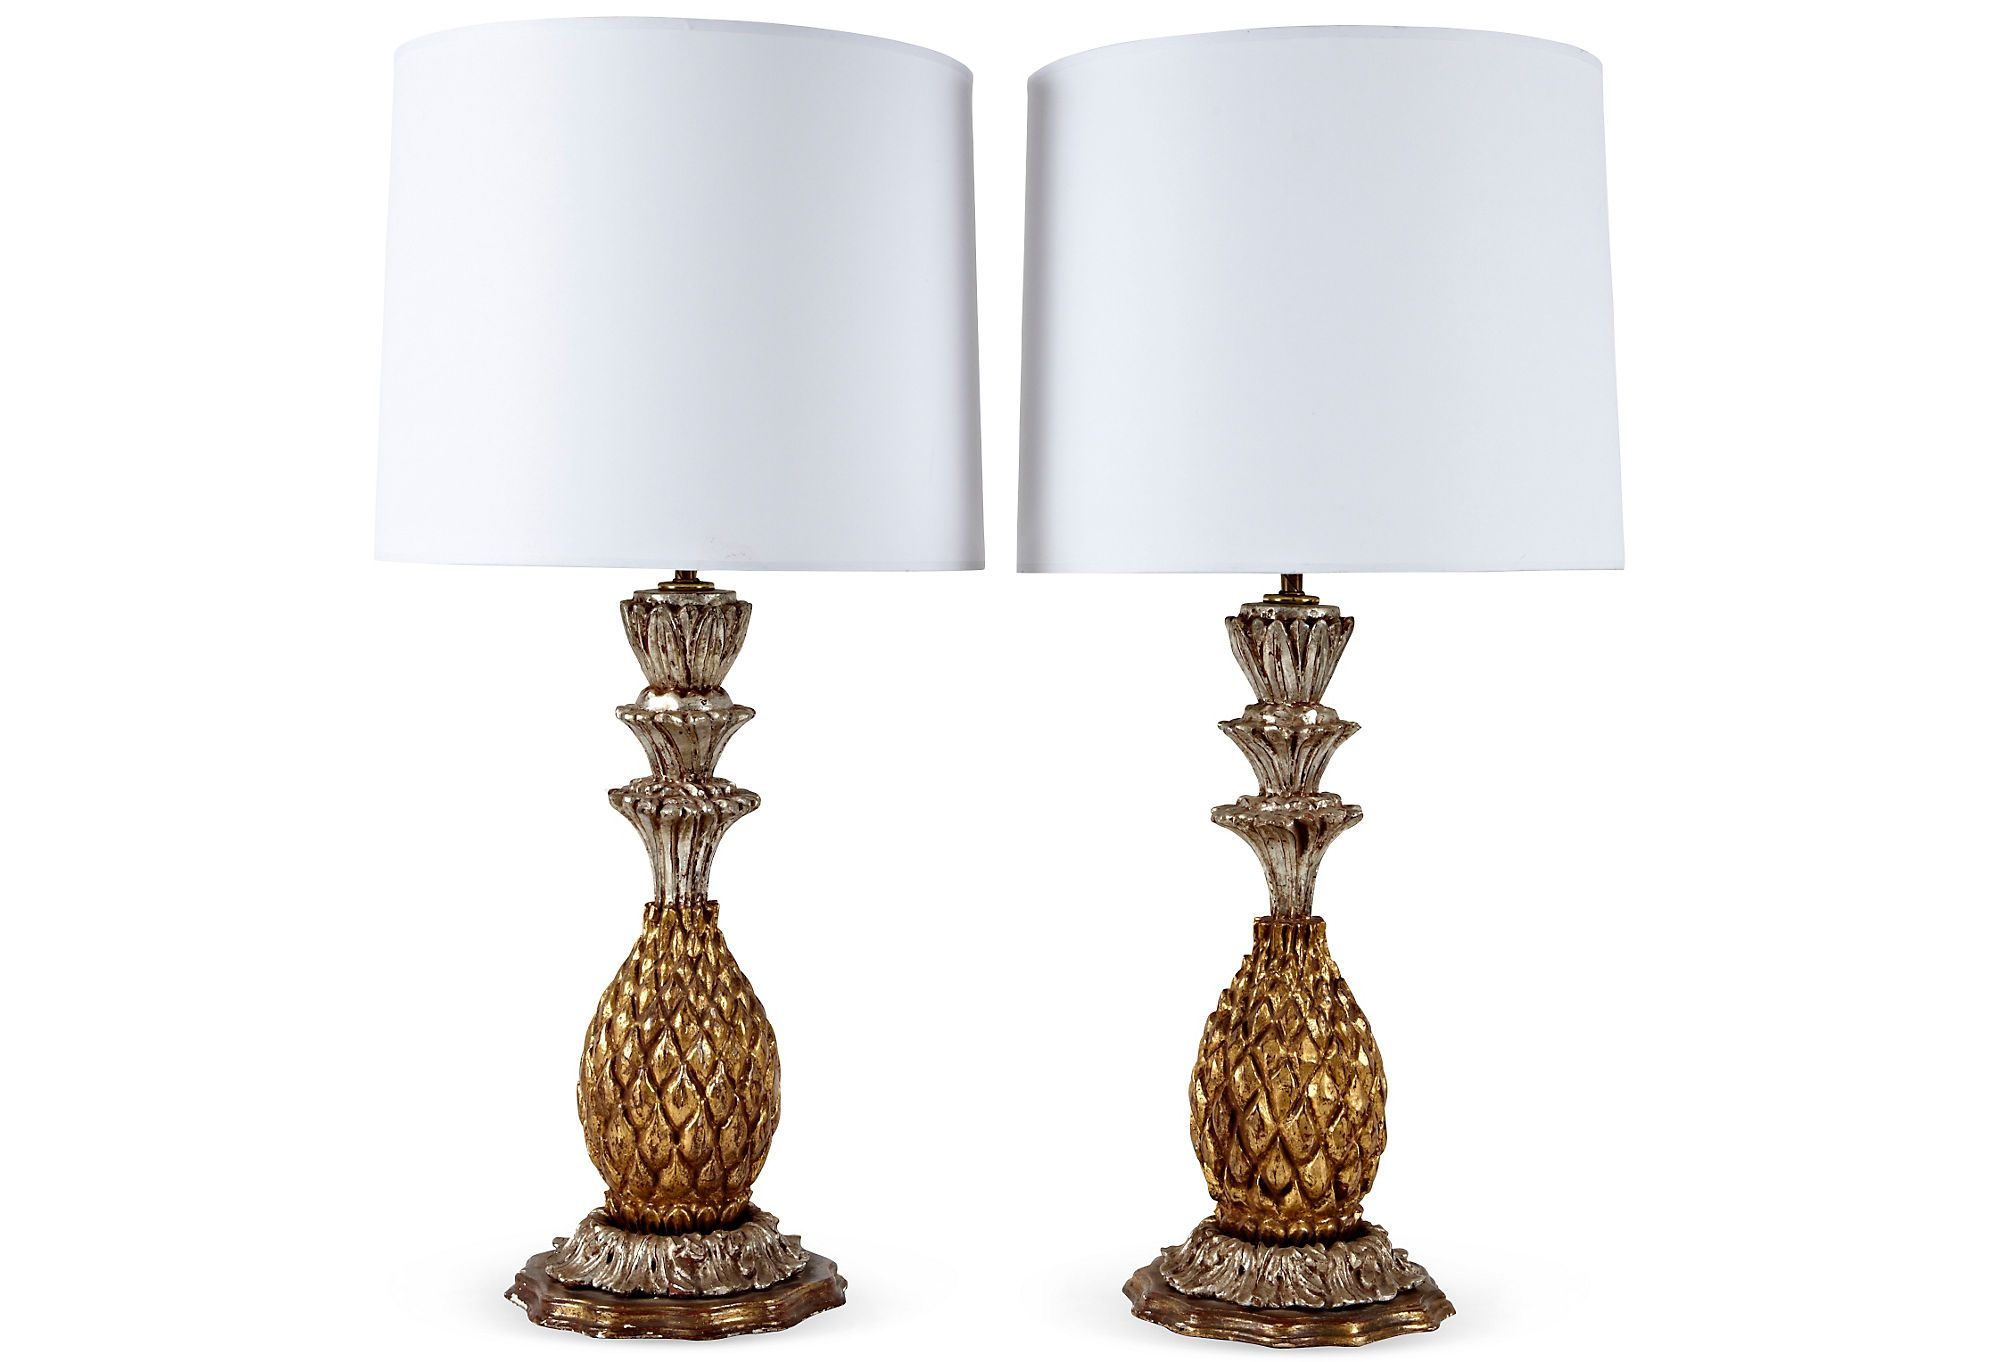 1940s Italian Table Lamps Pair On One Kings Lane Today Lamp Table Lamp Italian Table